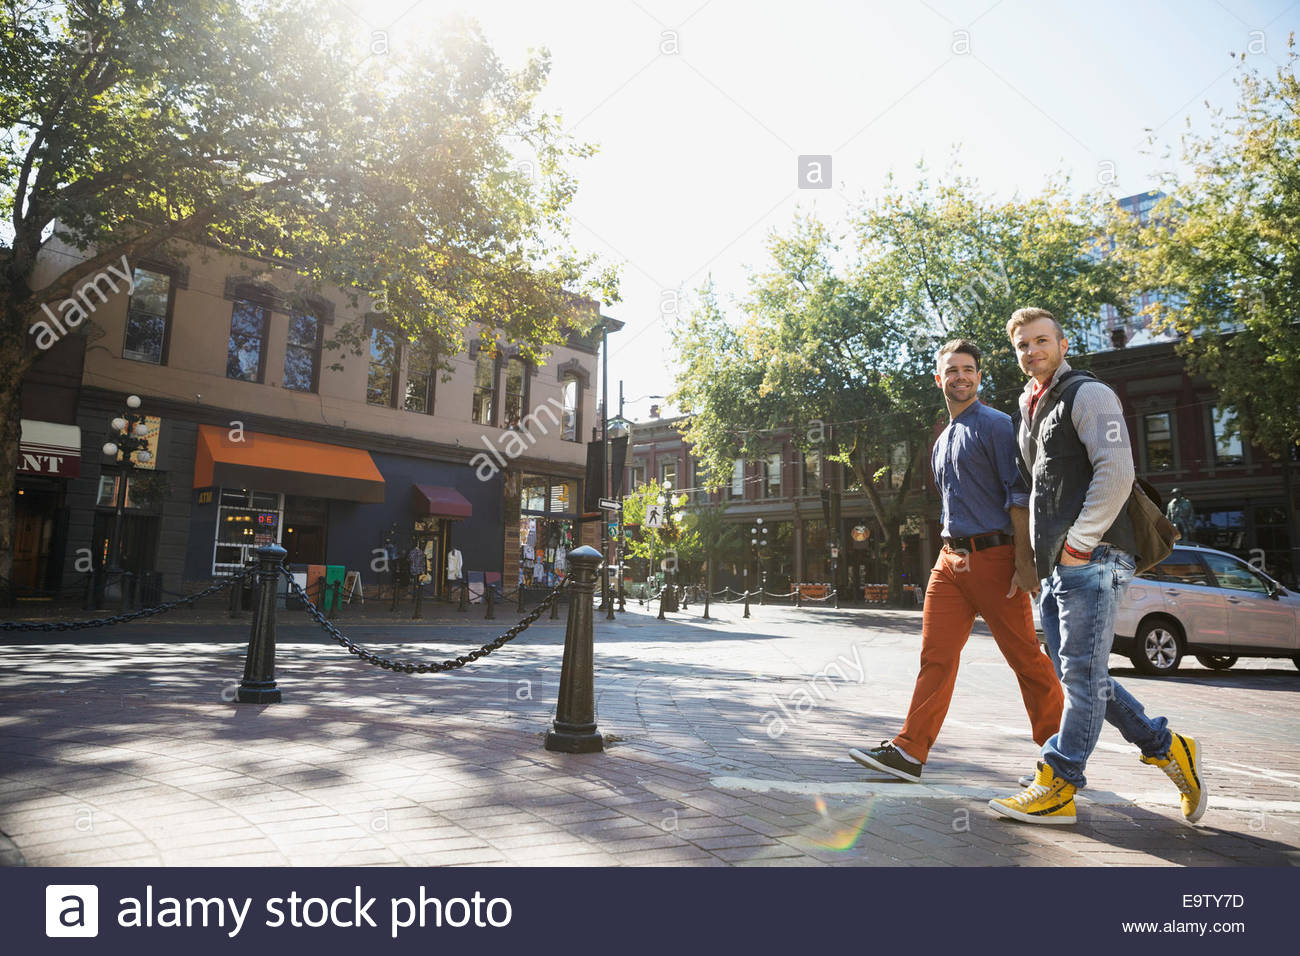 Homosexual couple walking on sunny urban street - Stock Image